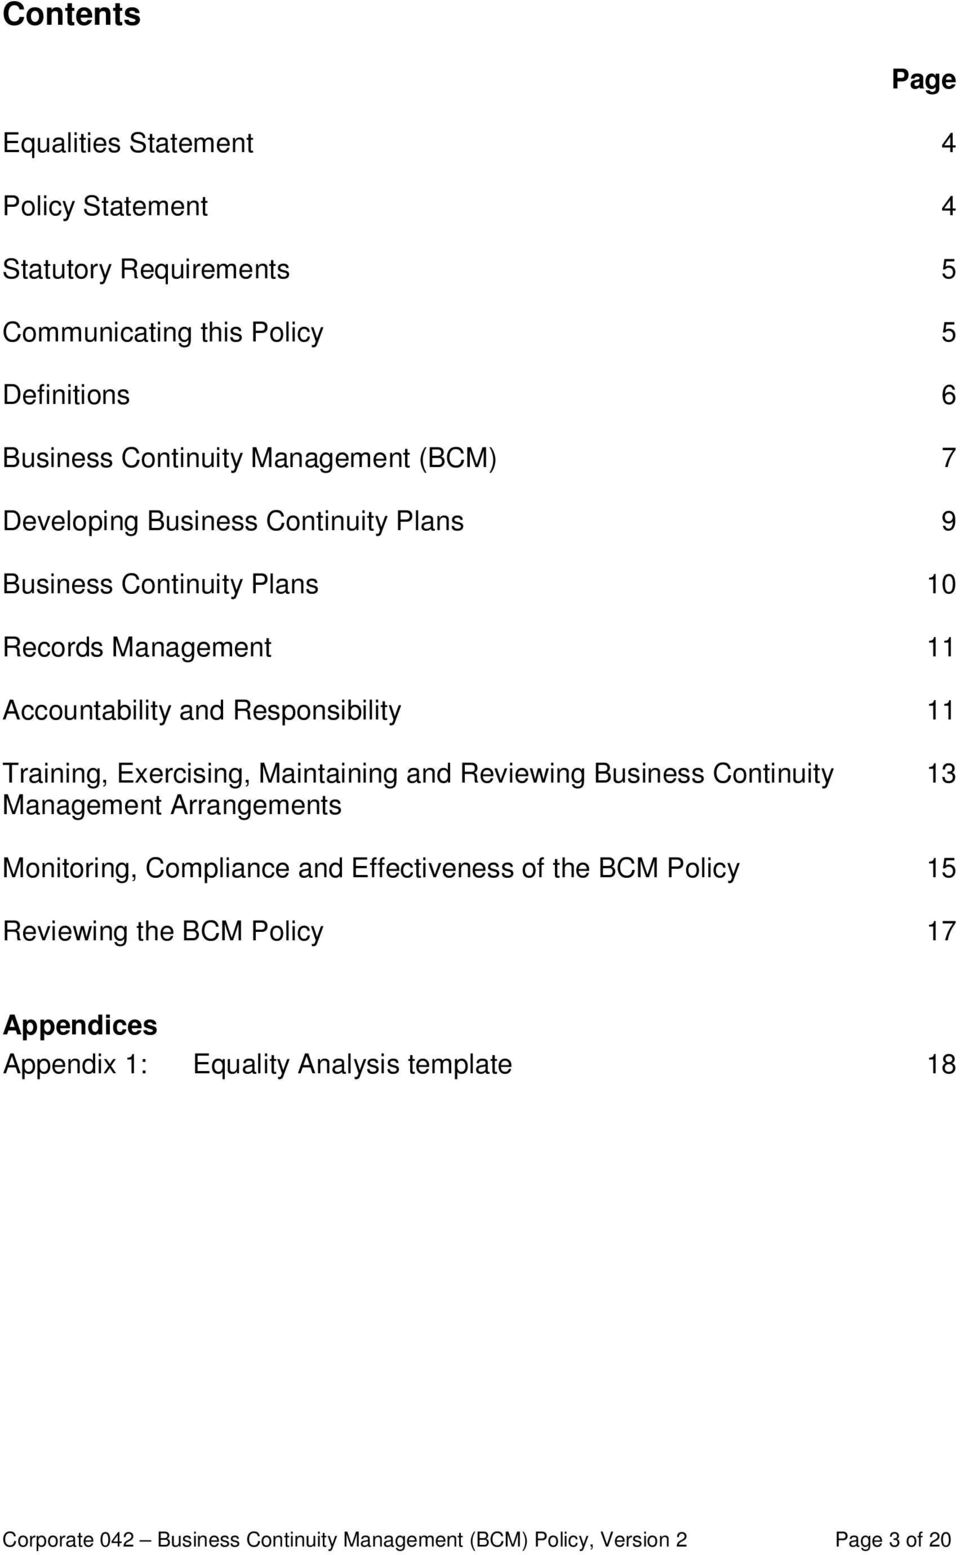 Business Continuity Management (BCM) Policy - PDF